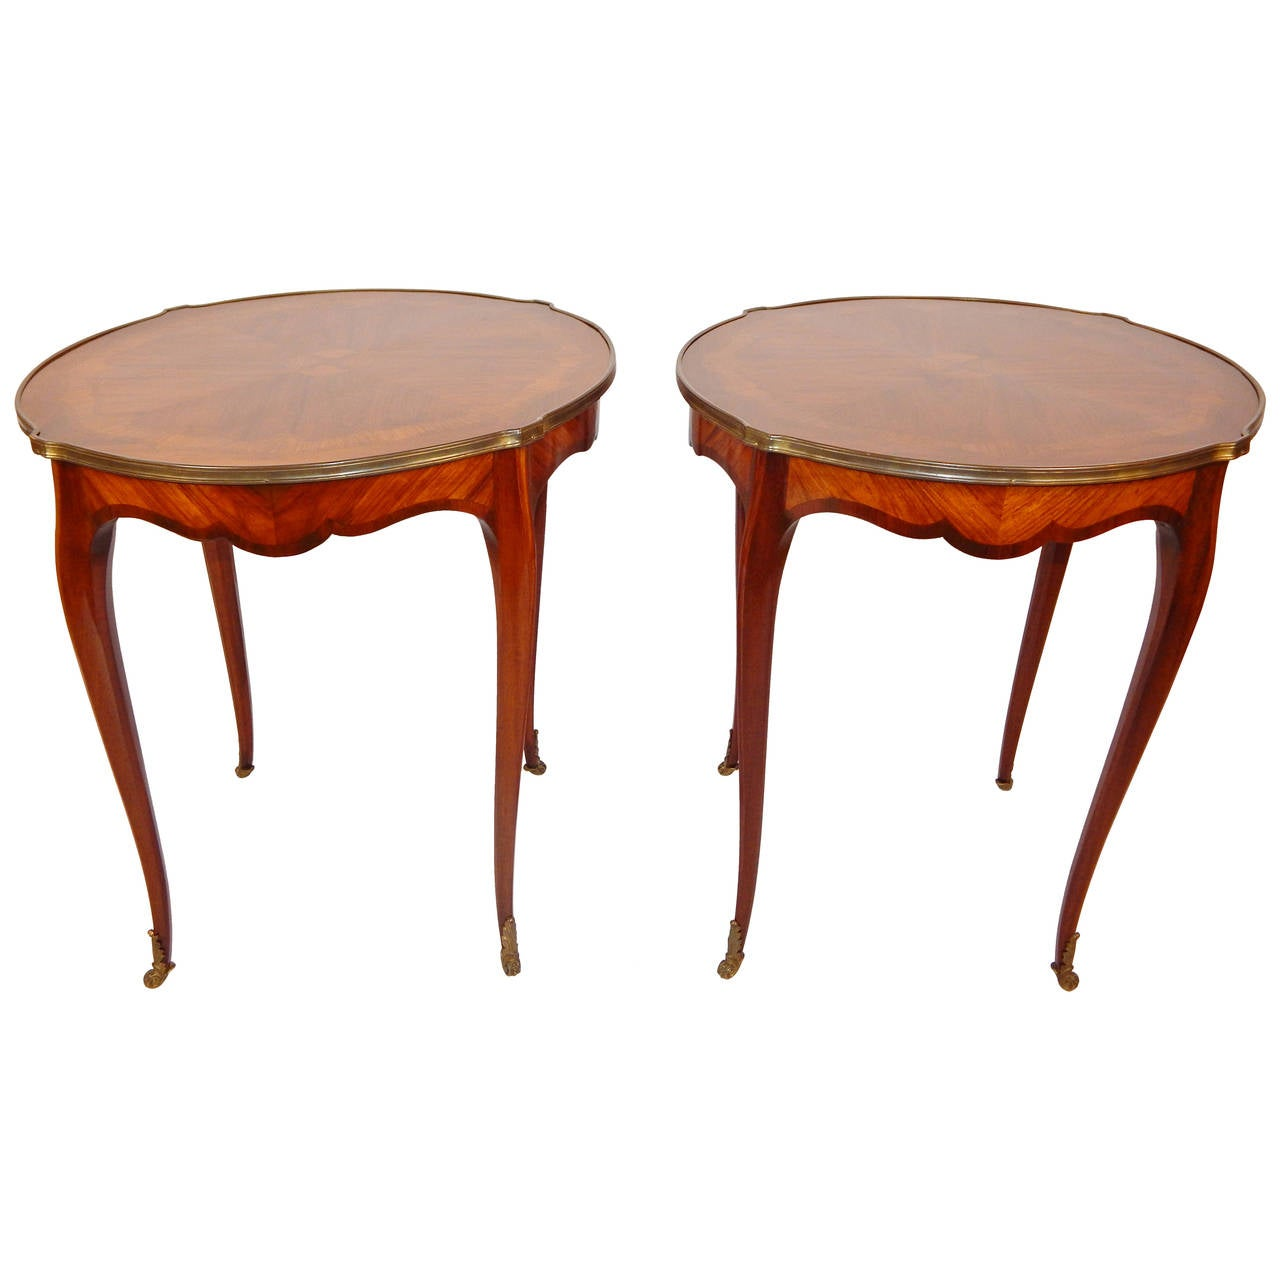 Pair of Louis XV Style Inlaid Bouillotte Tables